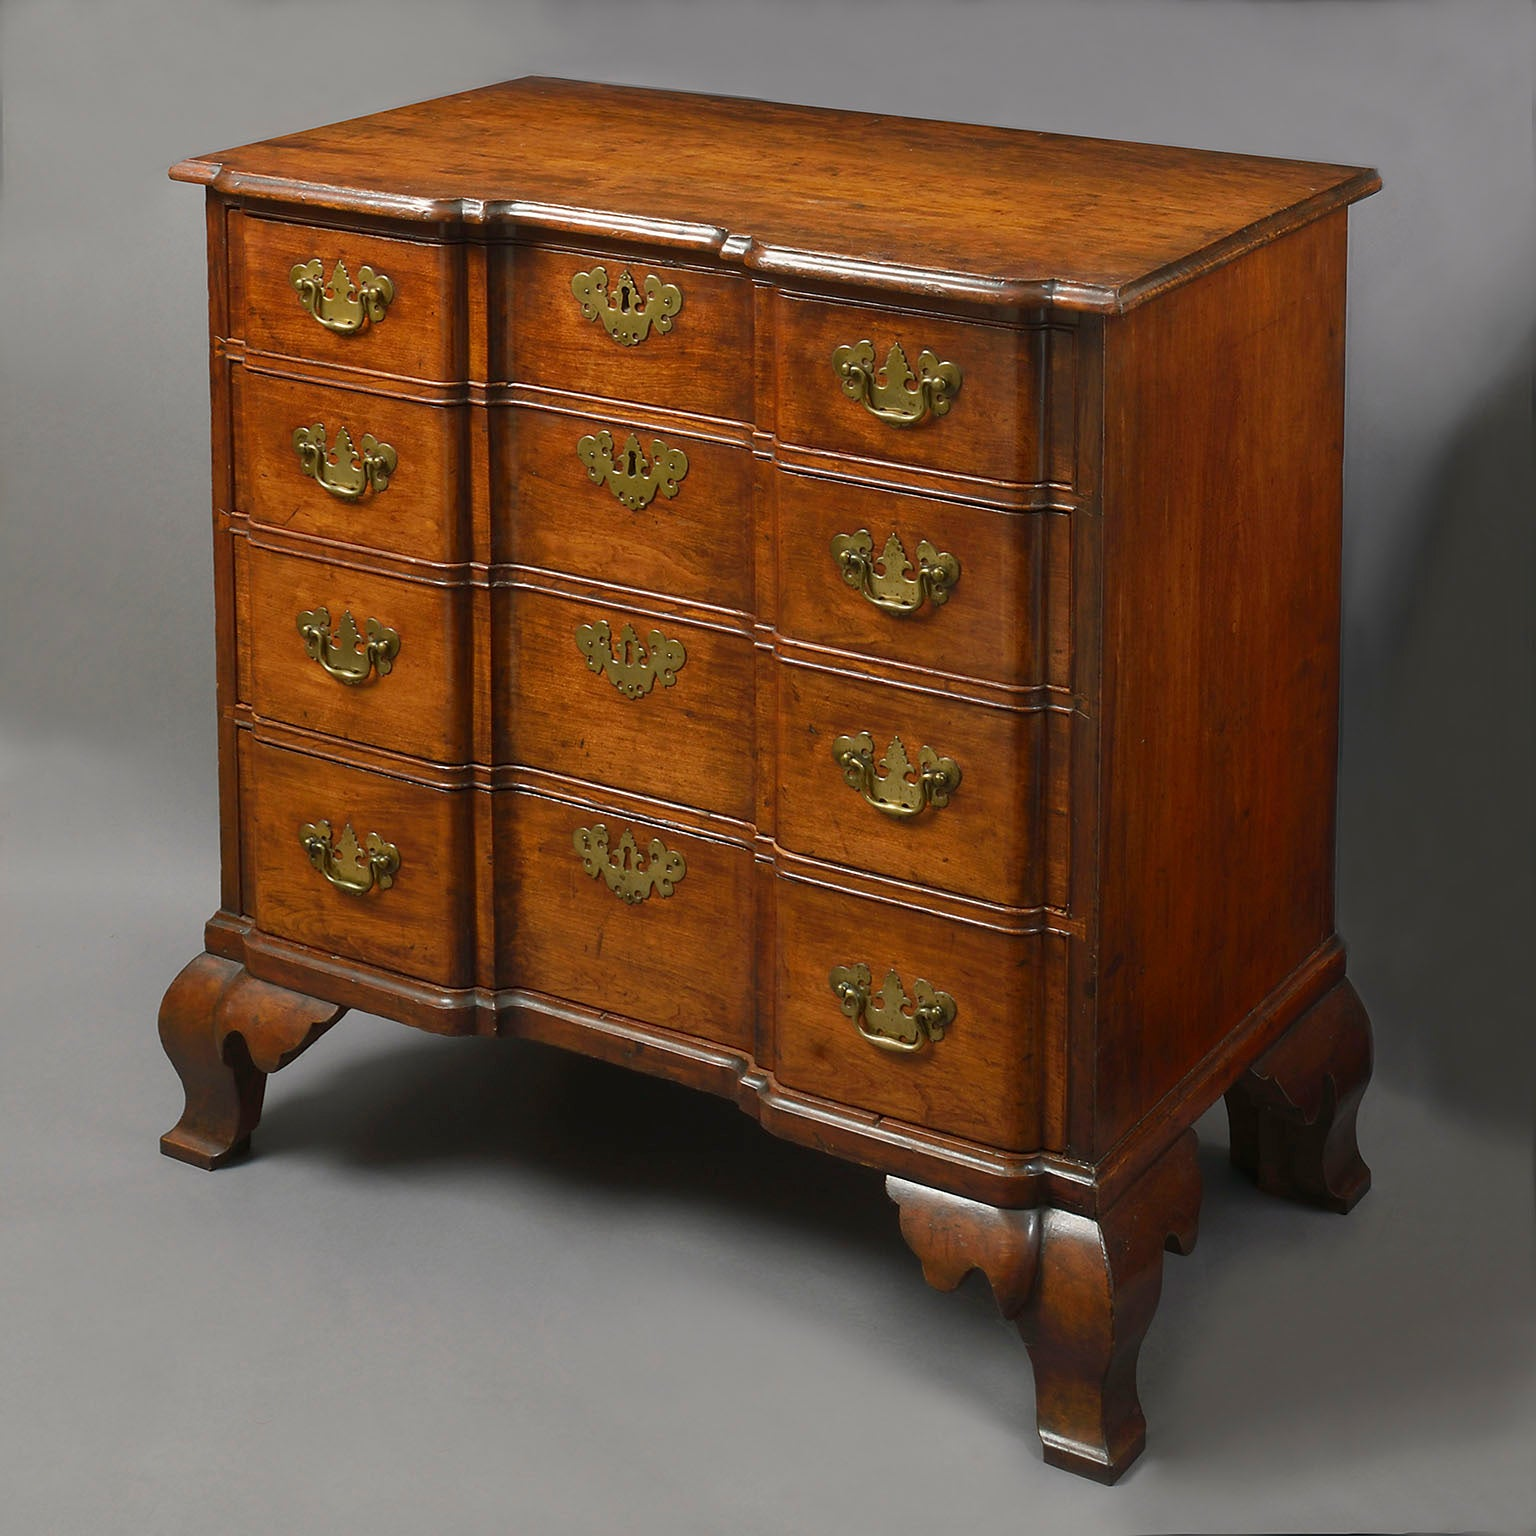 American Cherry Wood Block-Front Chest of the Chippendale Period